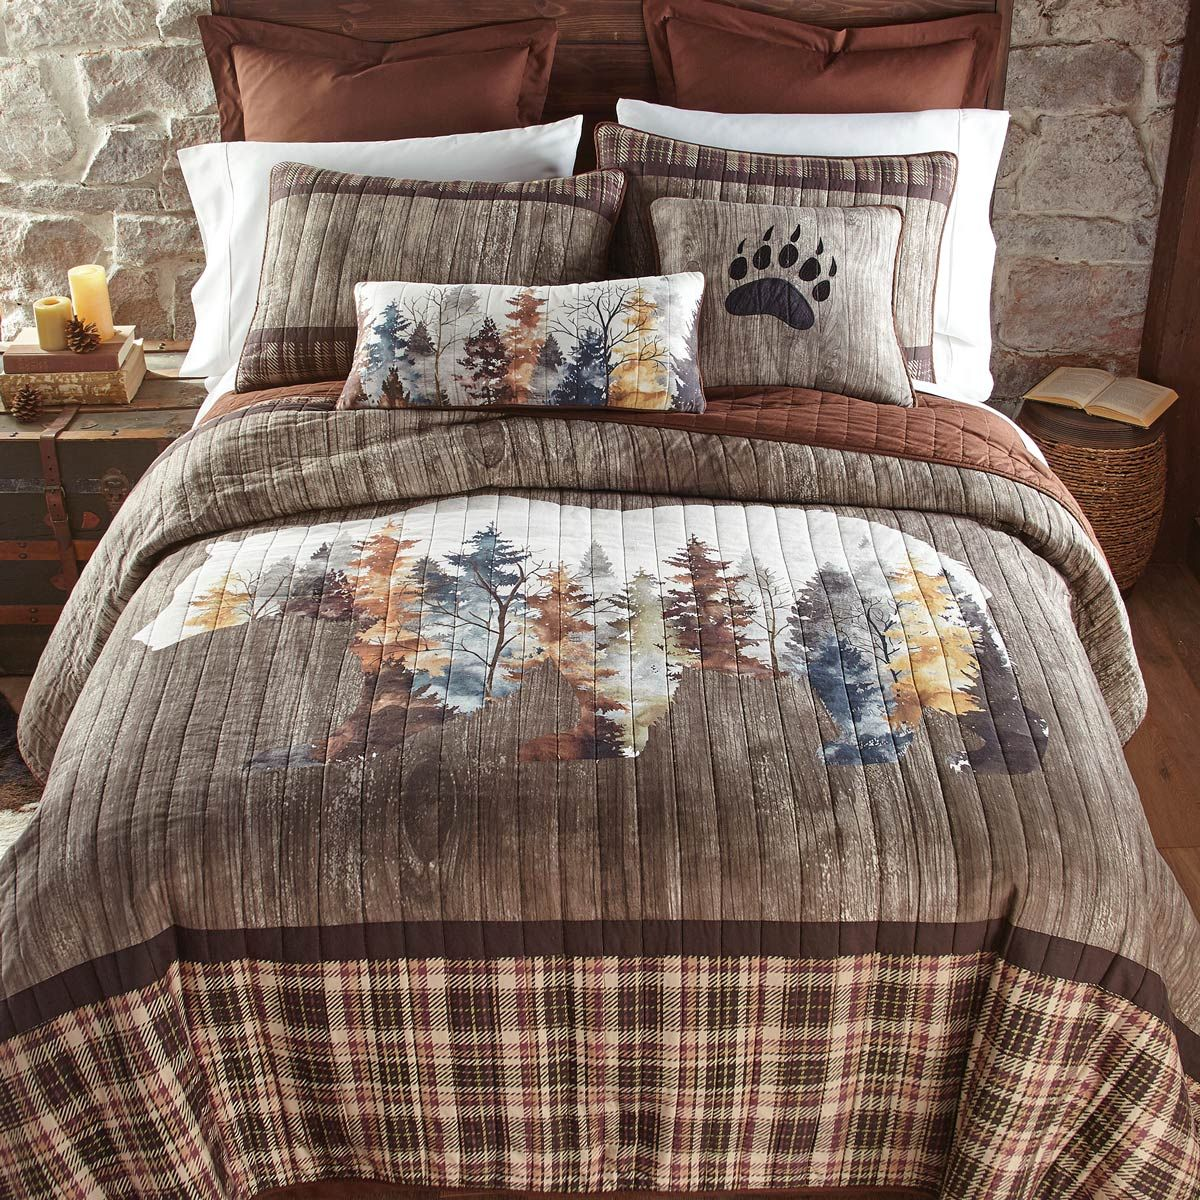 Peaceful Pines Bedding Rustic Bedding Sets Rustic Bedding Country Bedding Sets